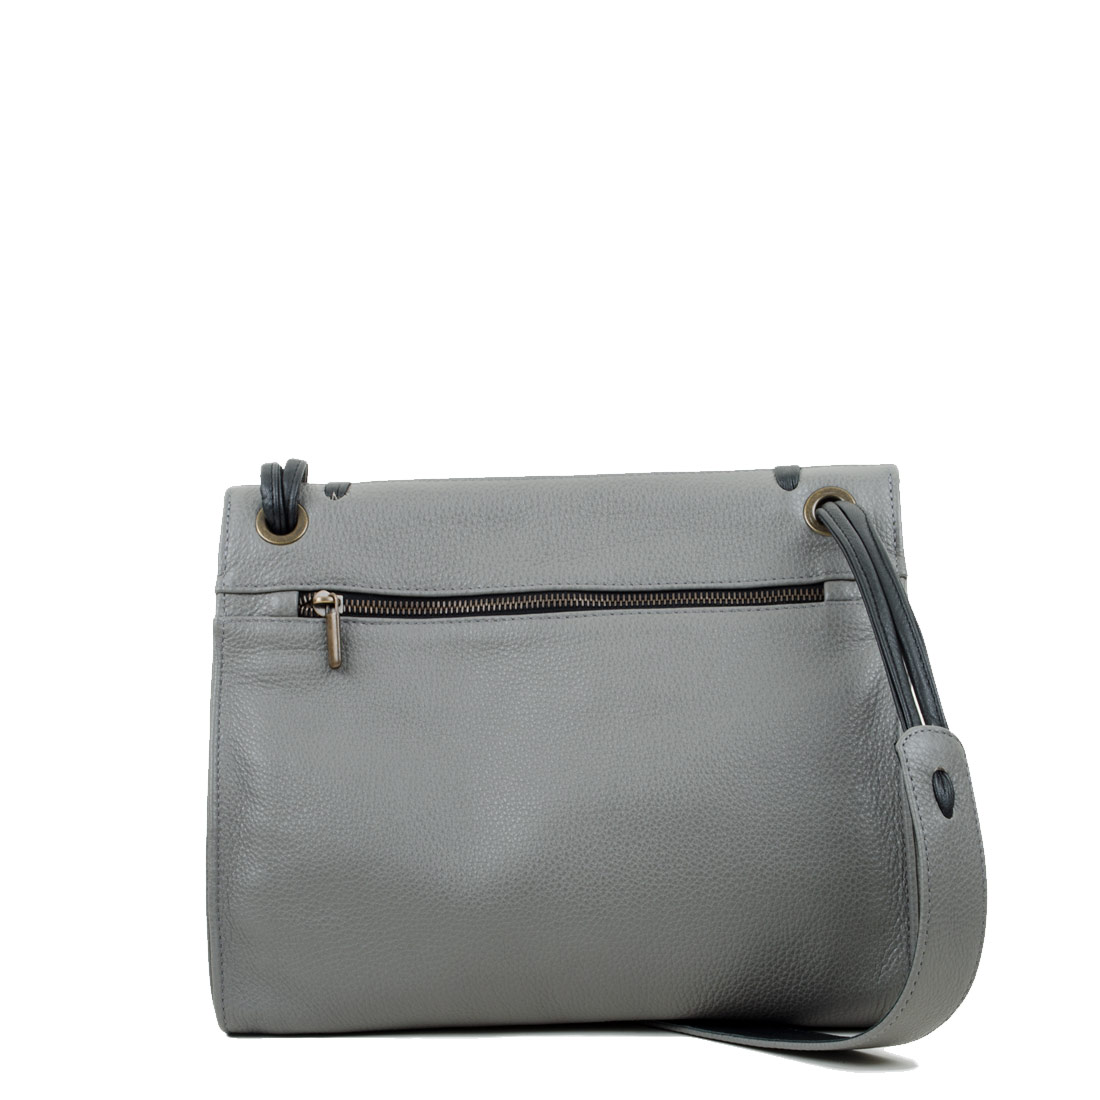 Elsa Grey Leather Across Body Bag